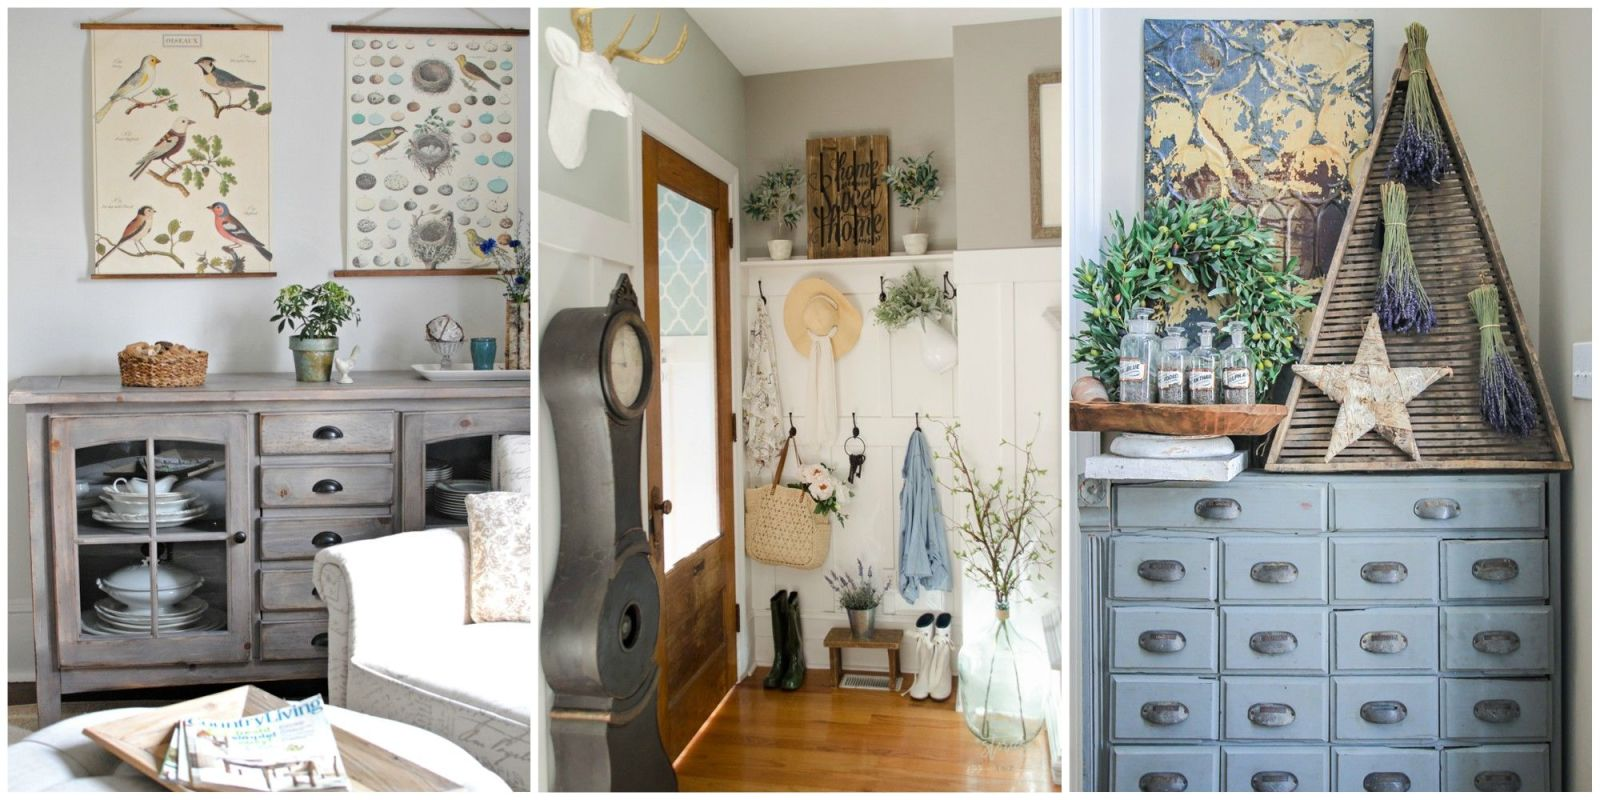 Decorating Ideas: 22 Beautiful Ways To Decorate Your Farmhouse For Spring